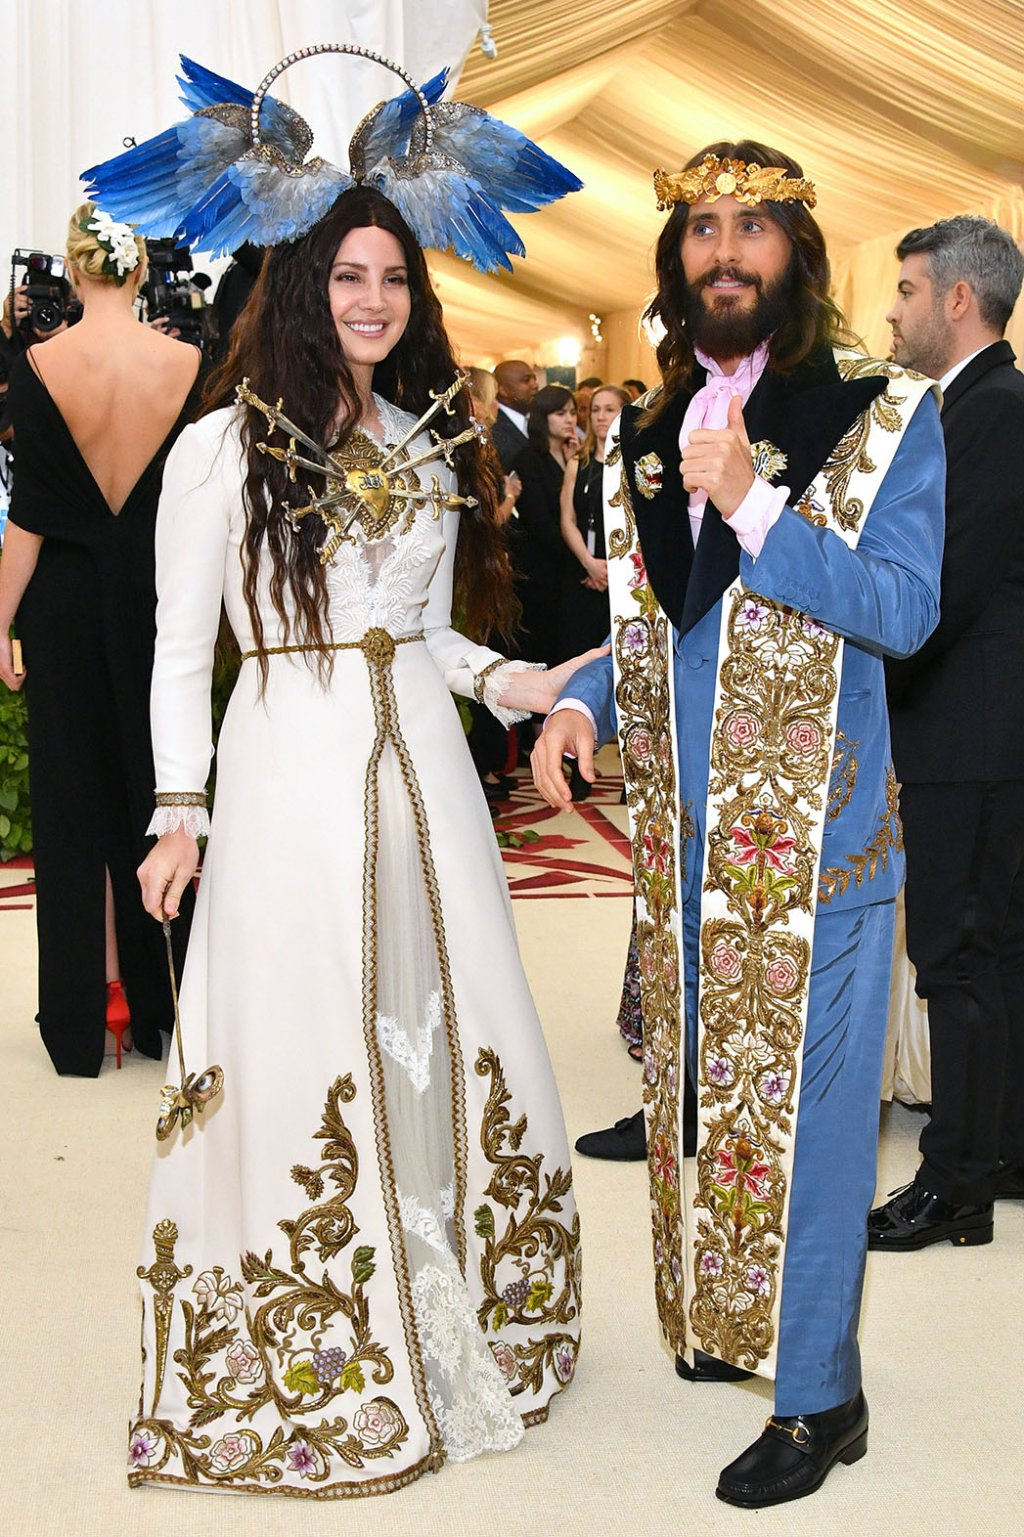 Lana Del Rey and Jared Leto in Gucci. Picture by Dia Dipasupil/WireImage